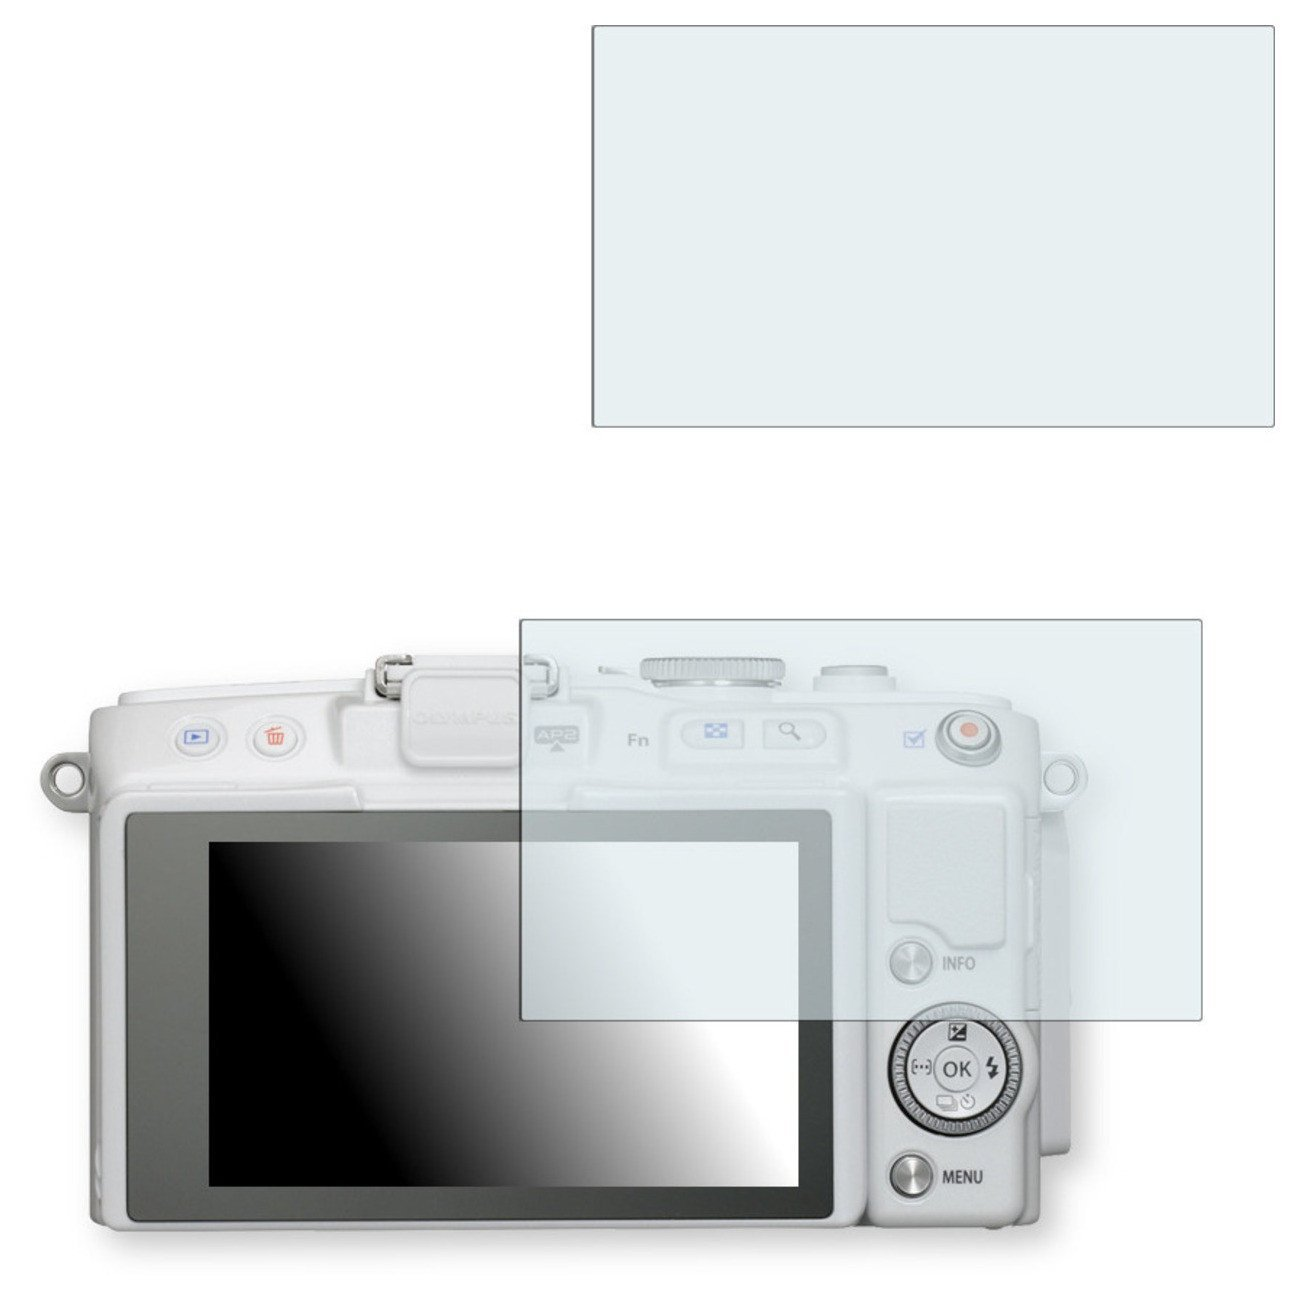 2x Golebo Anti-Glare screen protector for Olympus PEN E-PL6 (Anti-Reflex, Air pocket free application, Easy to remove)